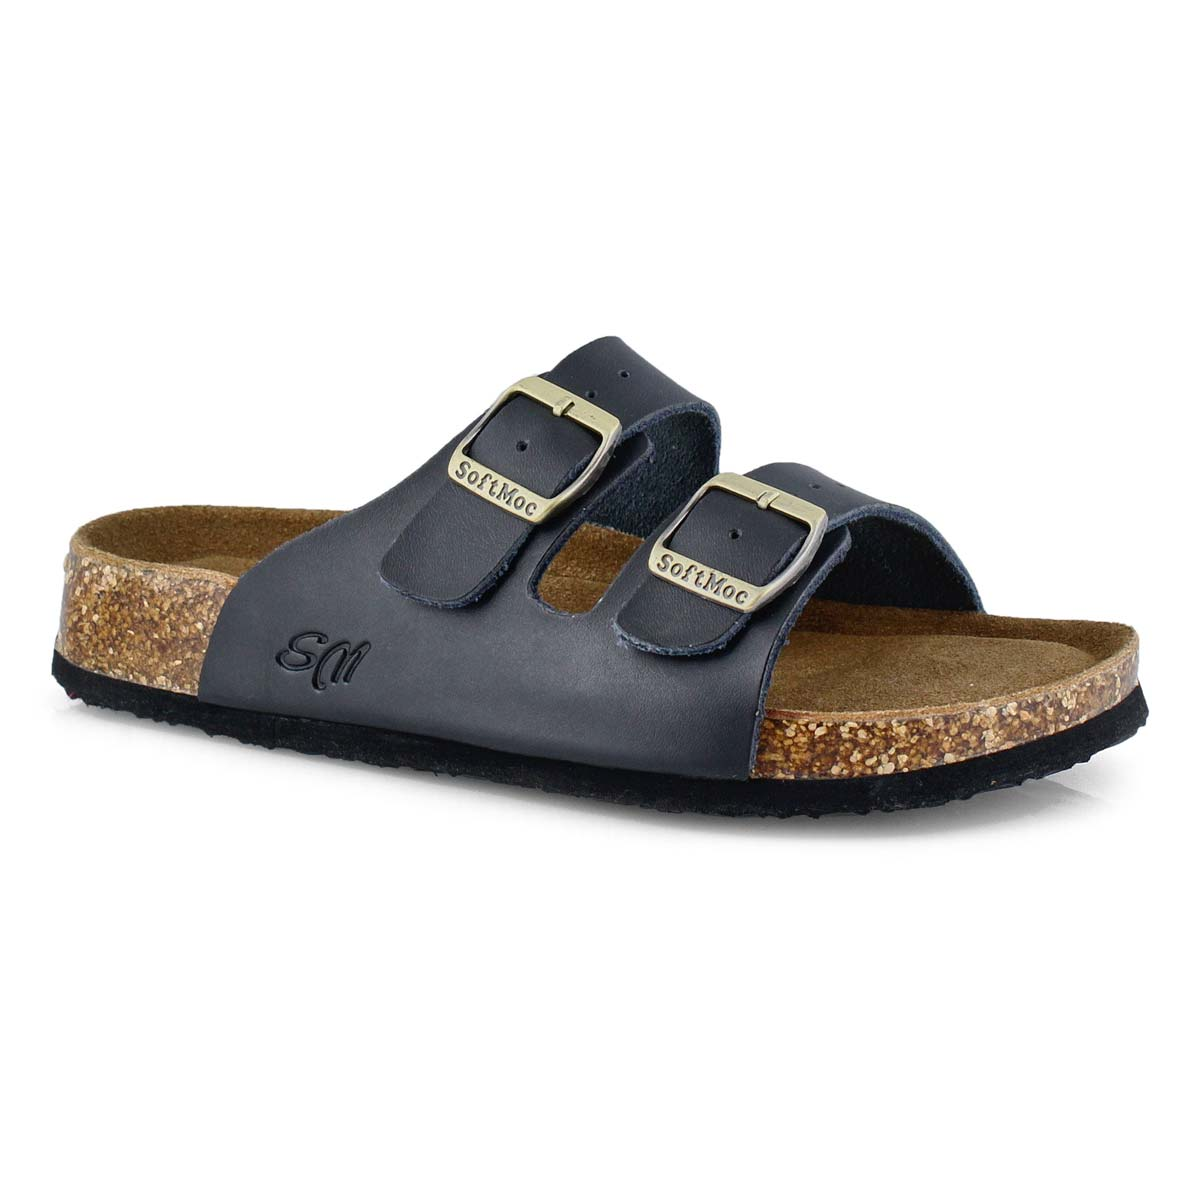 Women's ANNA 5 black memory foam slide sandals